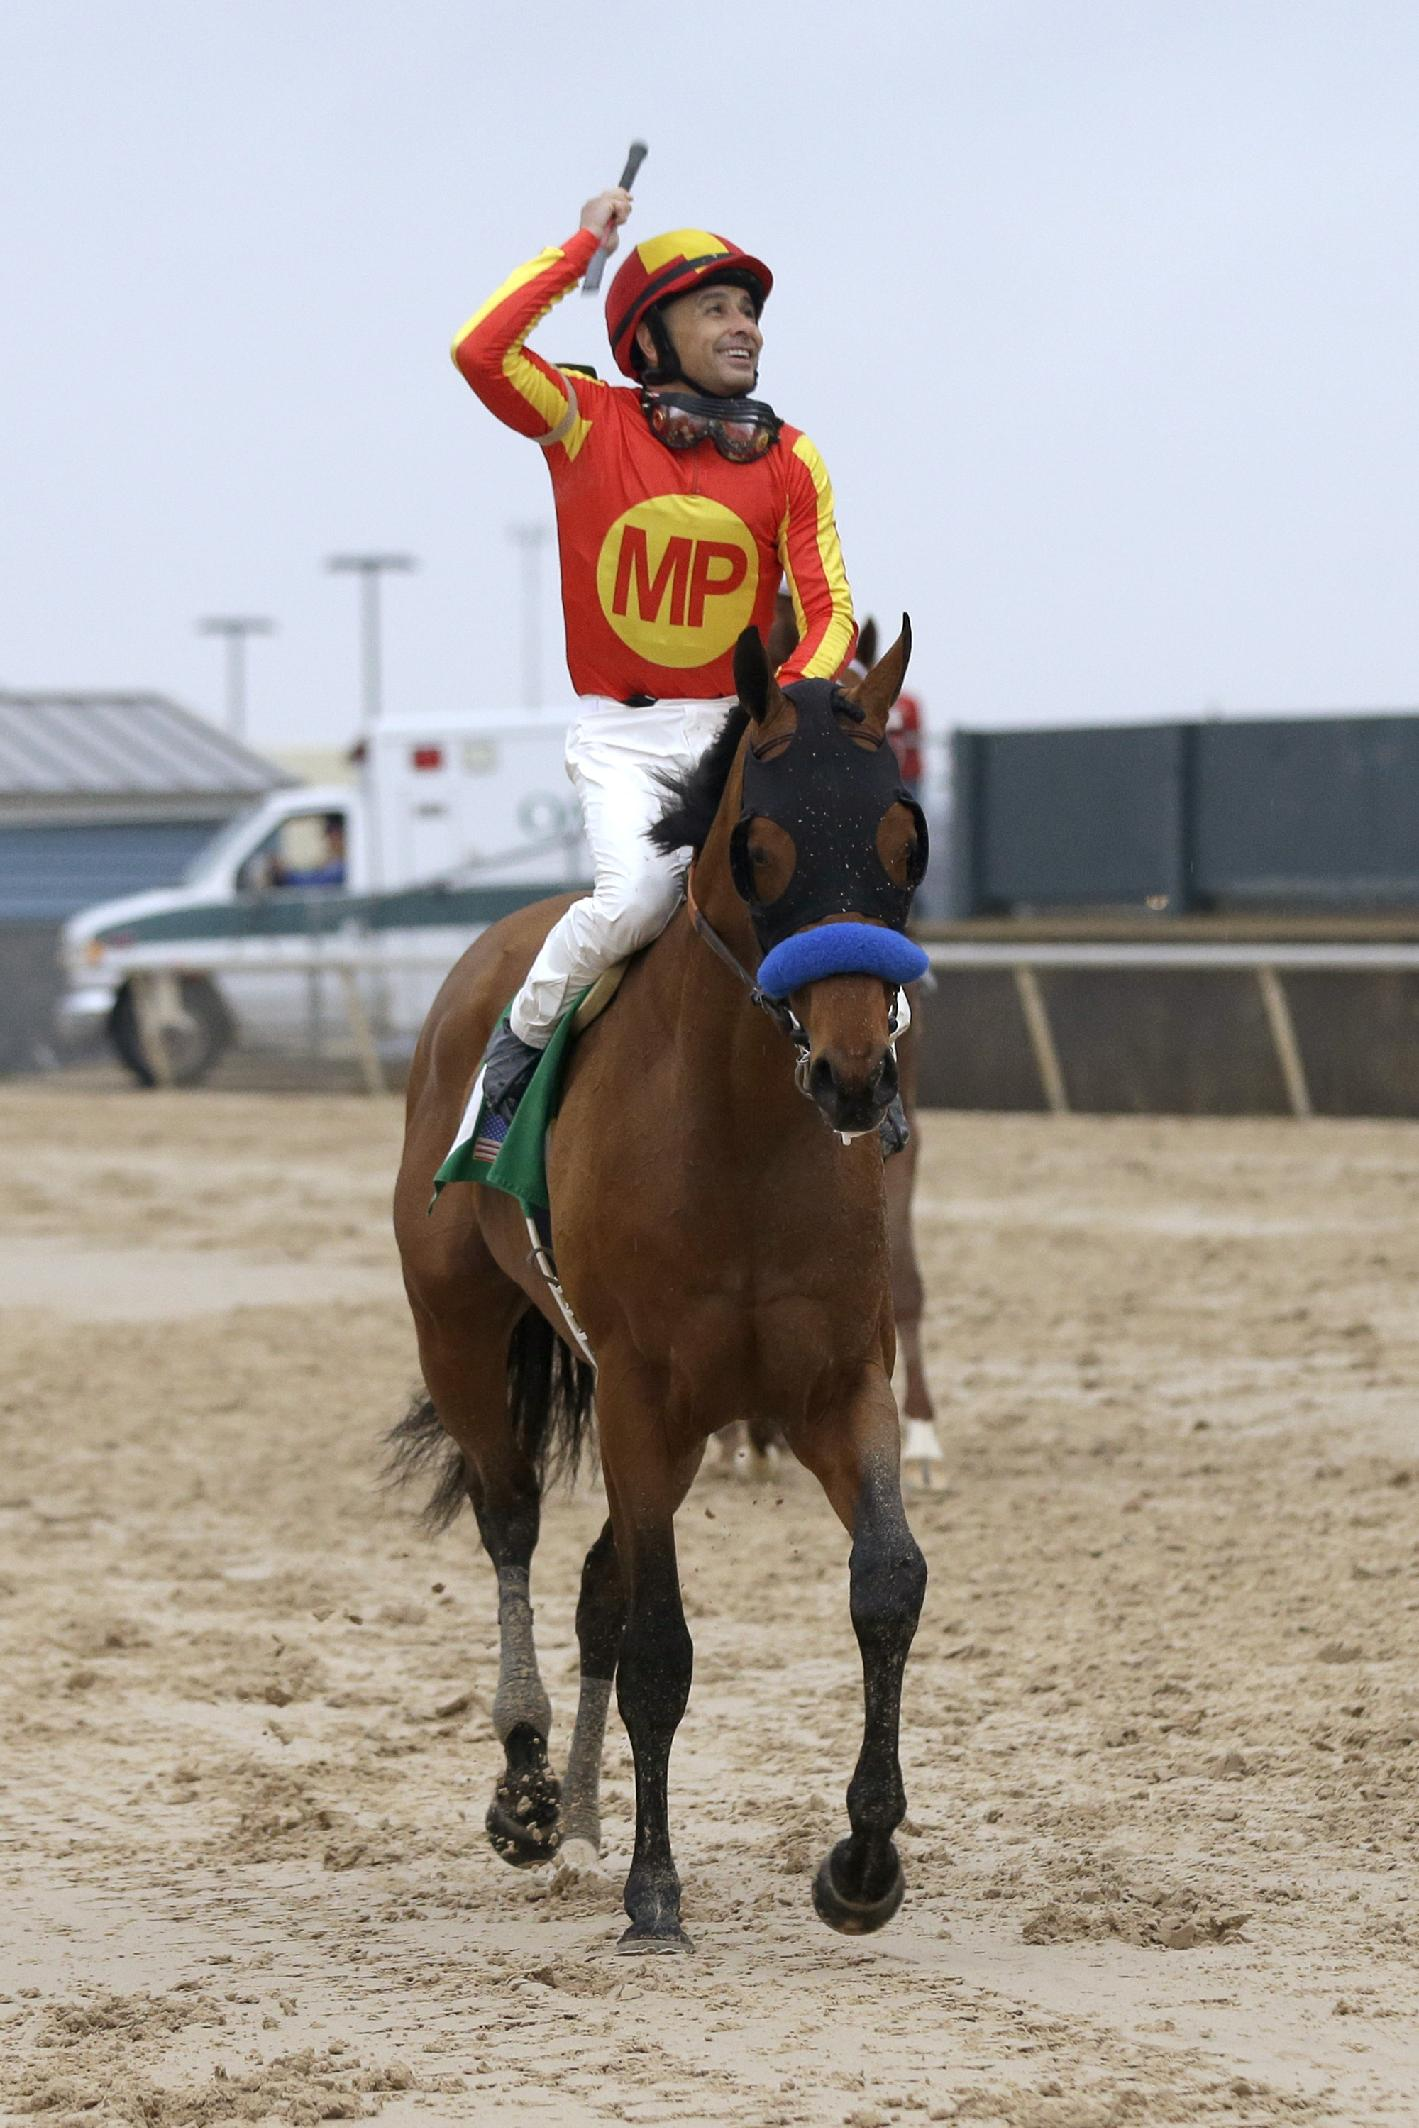 Jockey Mike Smith raises his whip as he rides Hoppertunity back towards the grandstand after winning the $600,000 Rebel Stakes horse race at Oaklawn Park in Hot Springs, Ark., Saturday, March 15, 2014